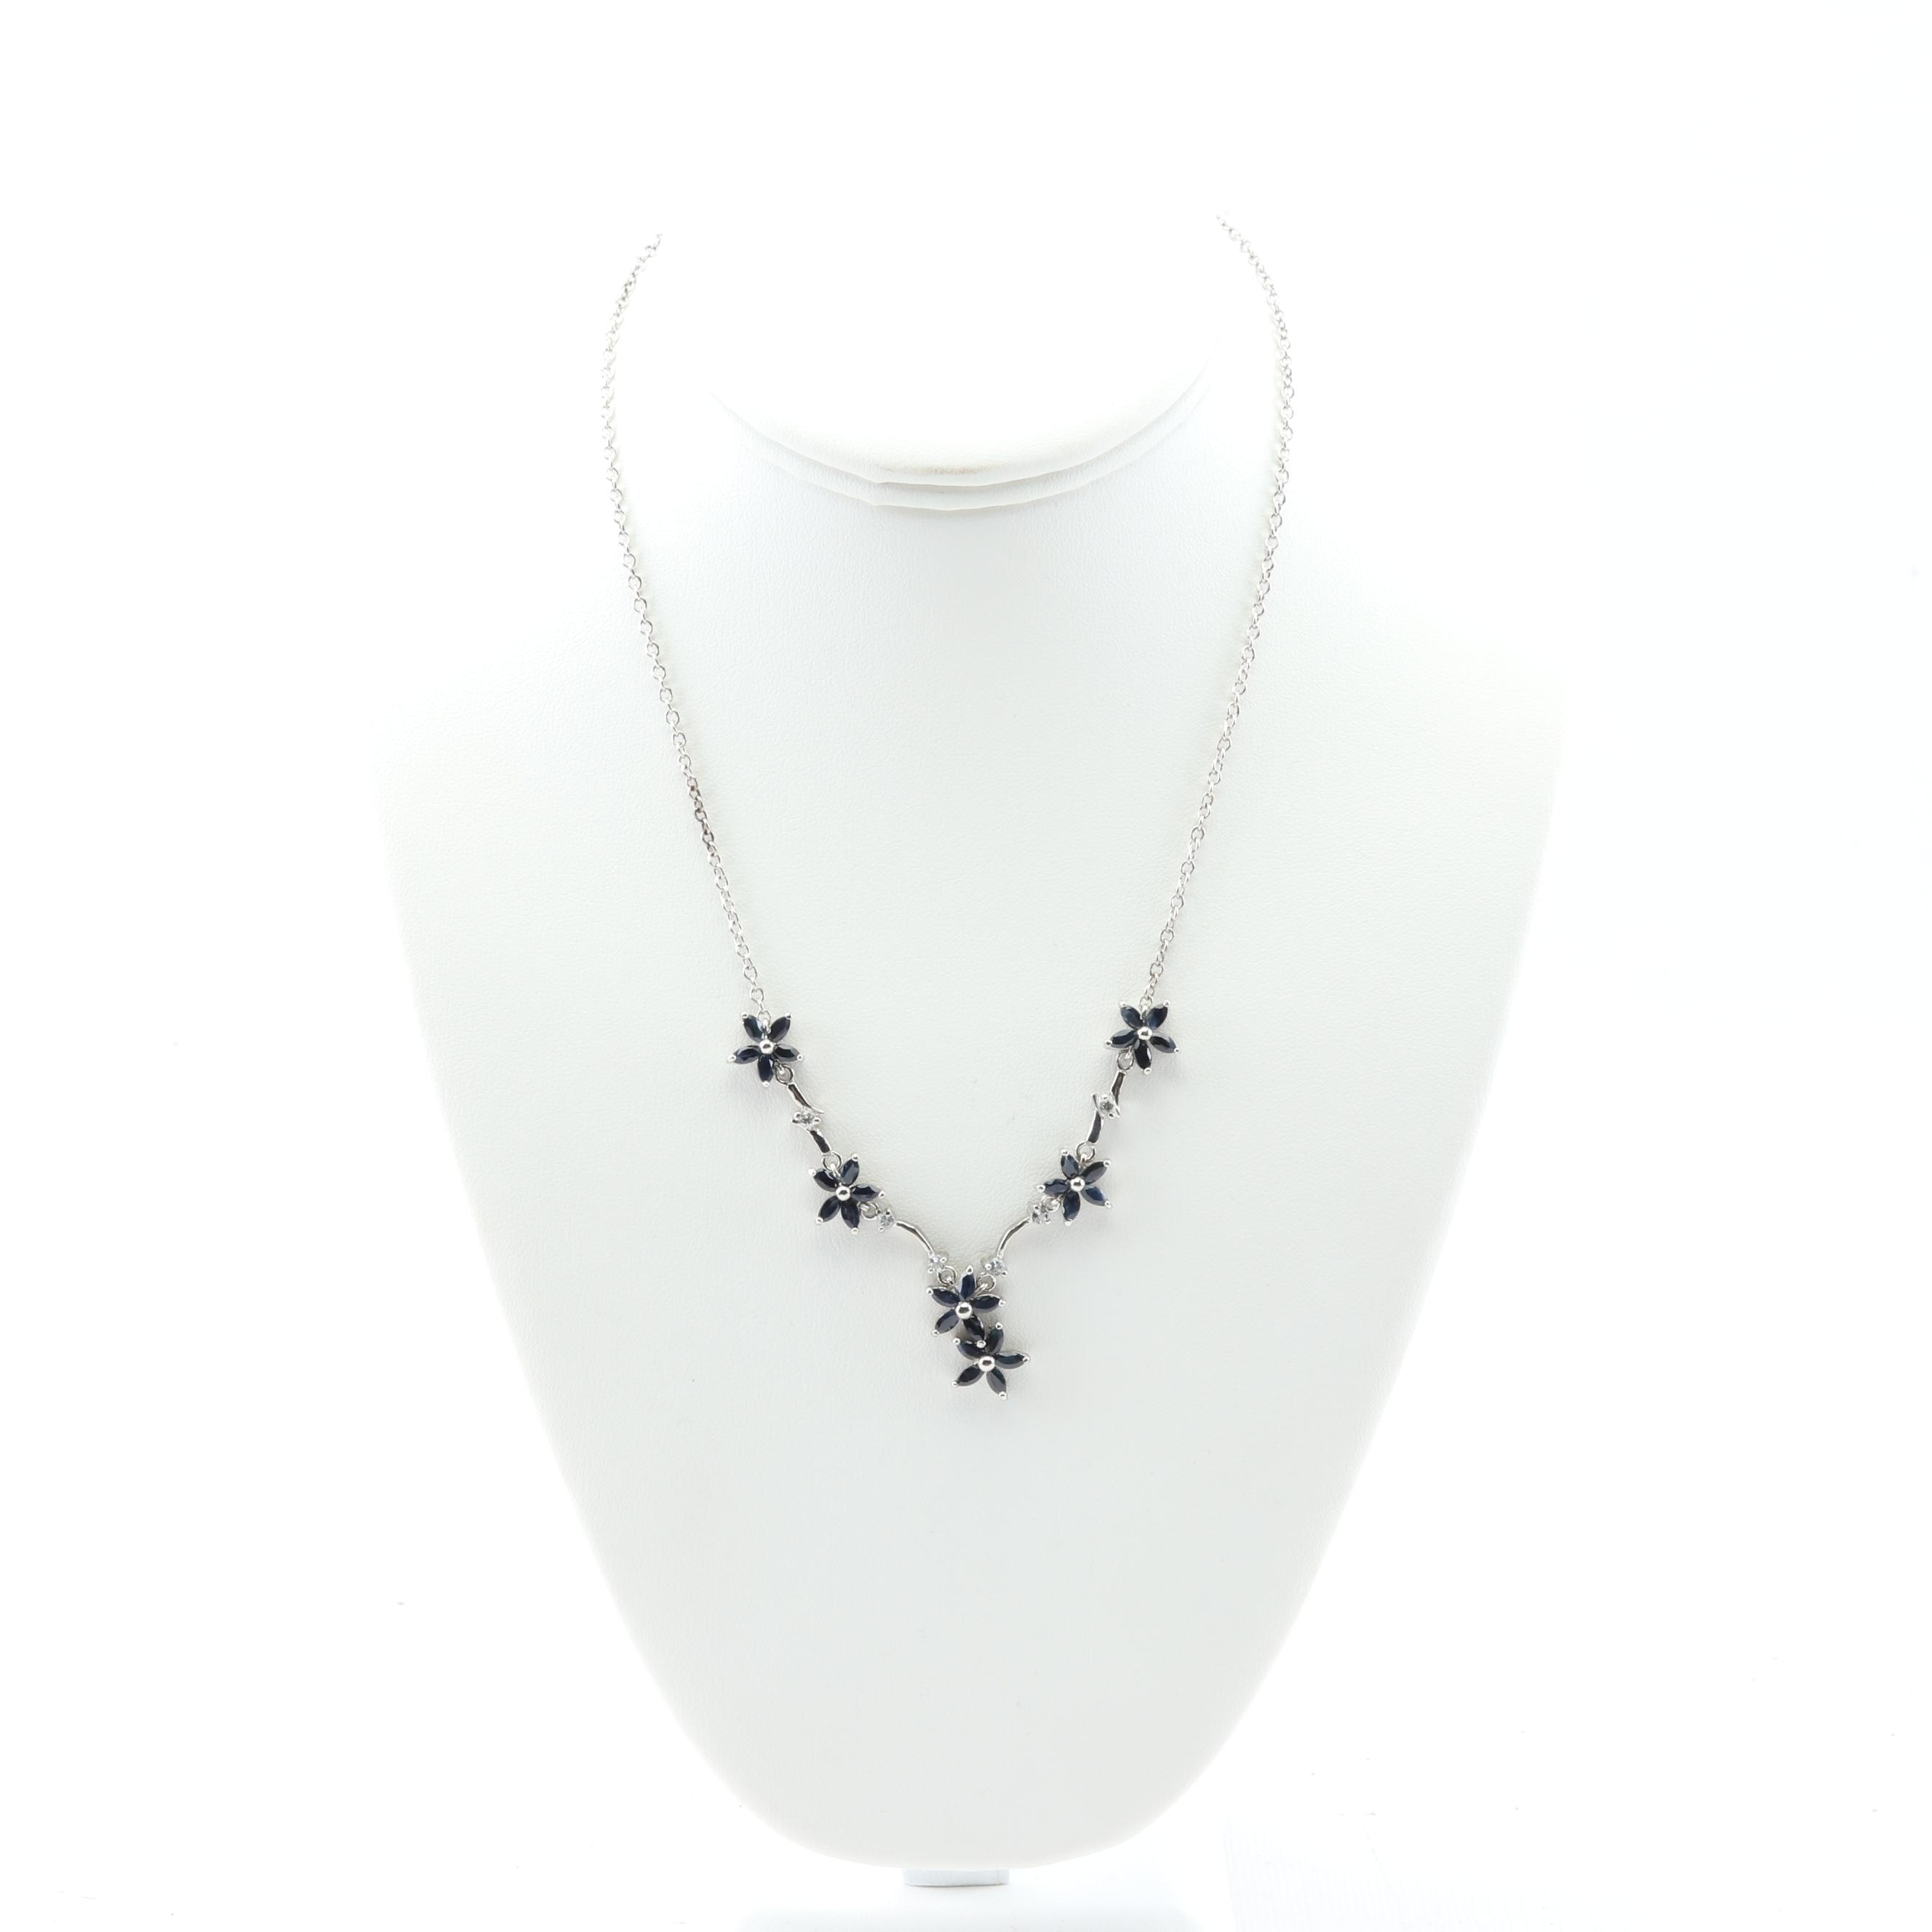 Sterling Silver Six-Station Sapphire Flower Necklace with Cubic Zirconia Accents